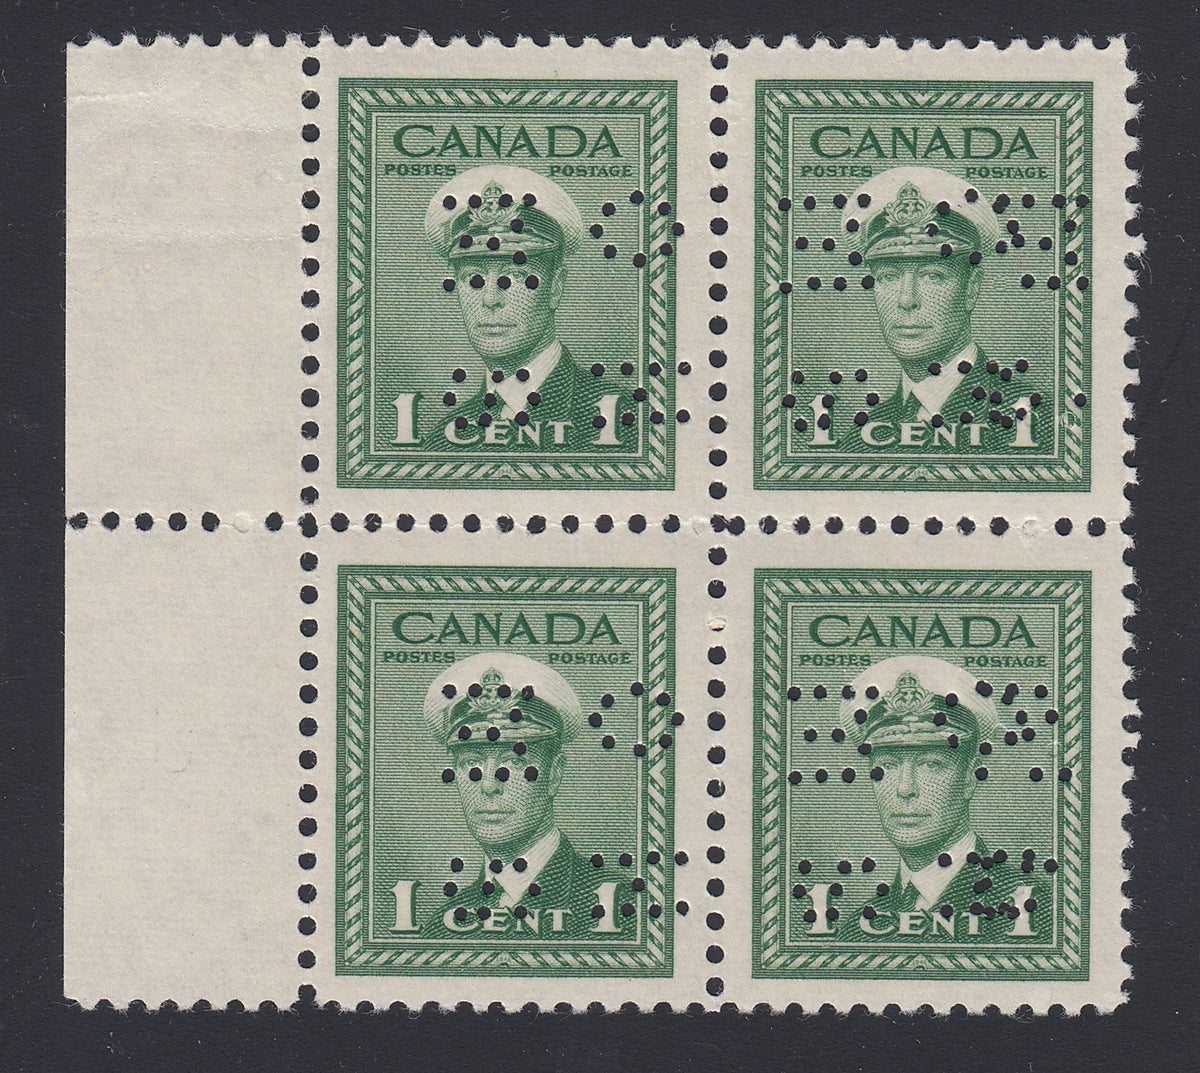 0310CA1804 - Canada O249 'F & FX' Mint Block of 4